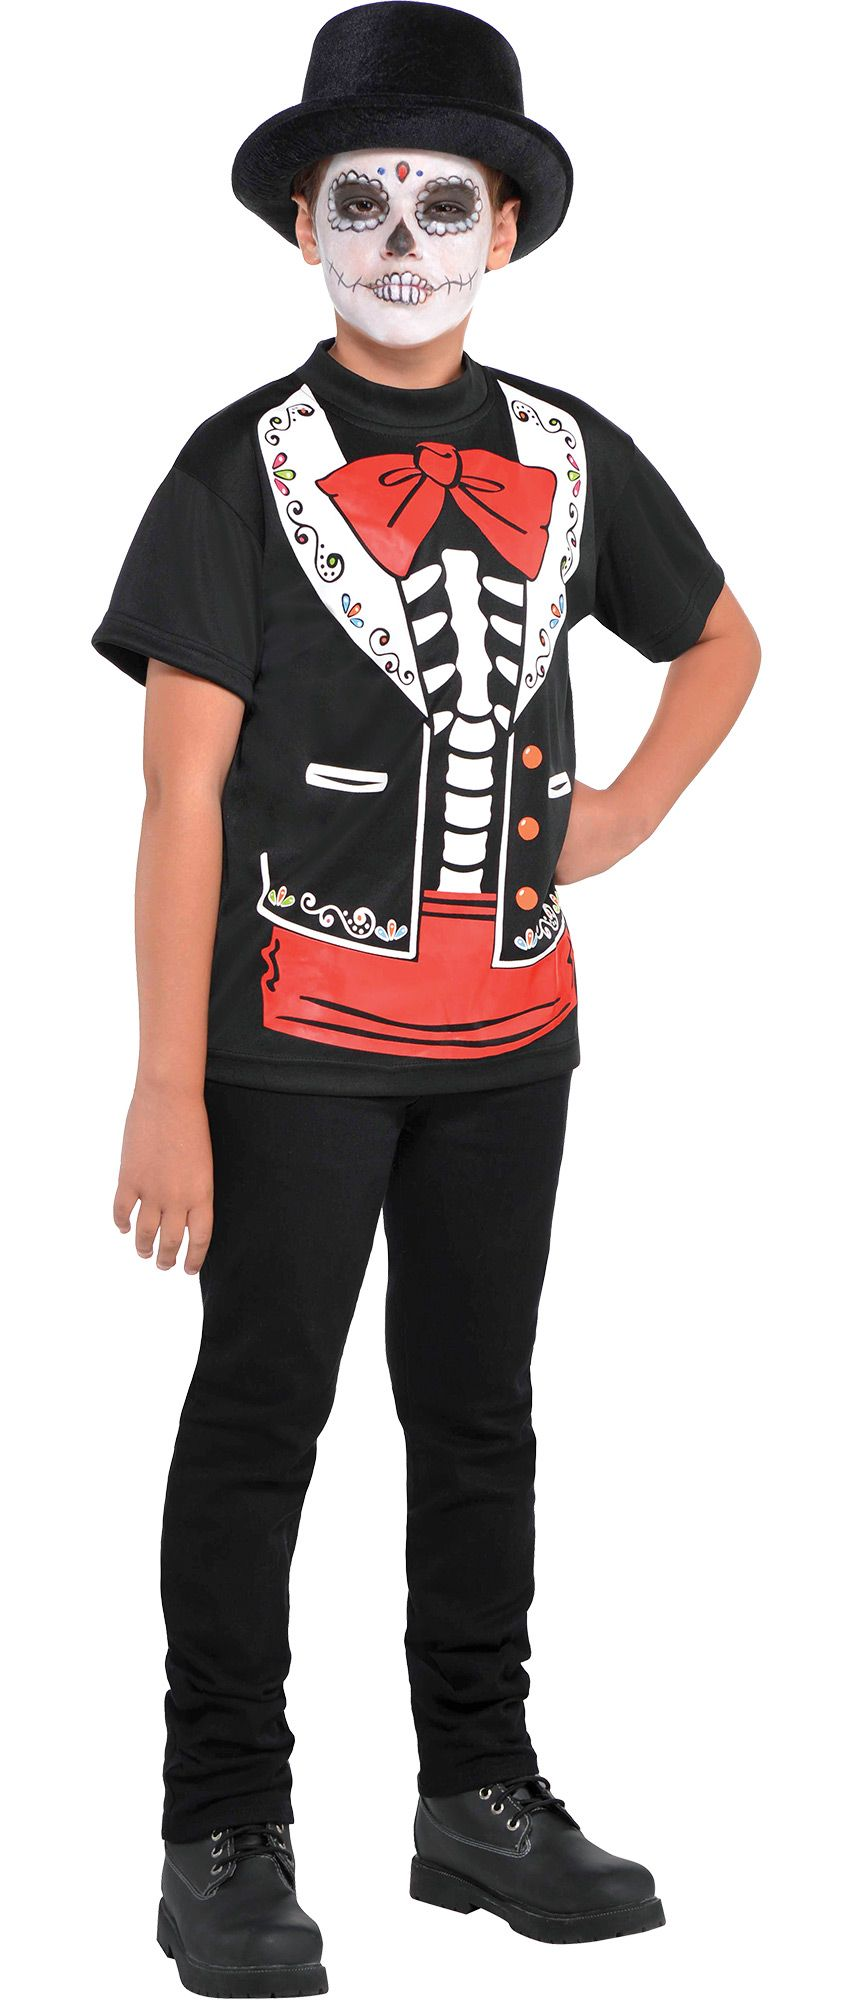 Create Your Look - Boys' Day of the Dead